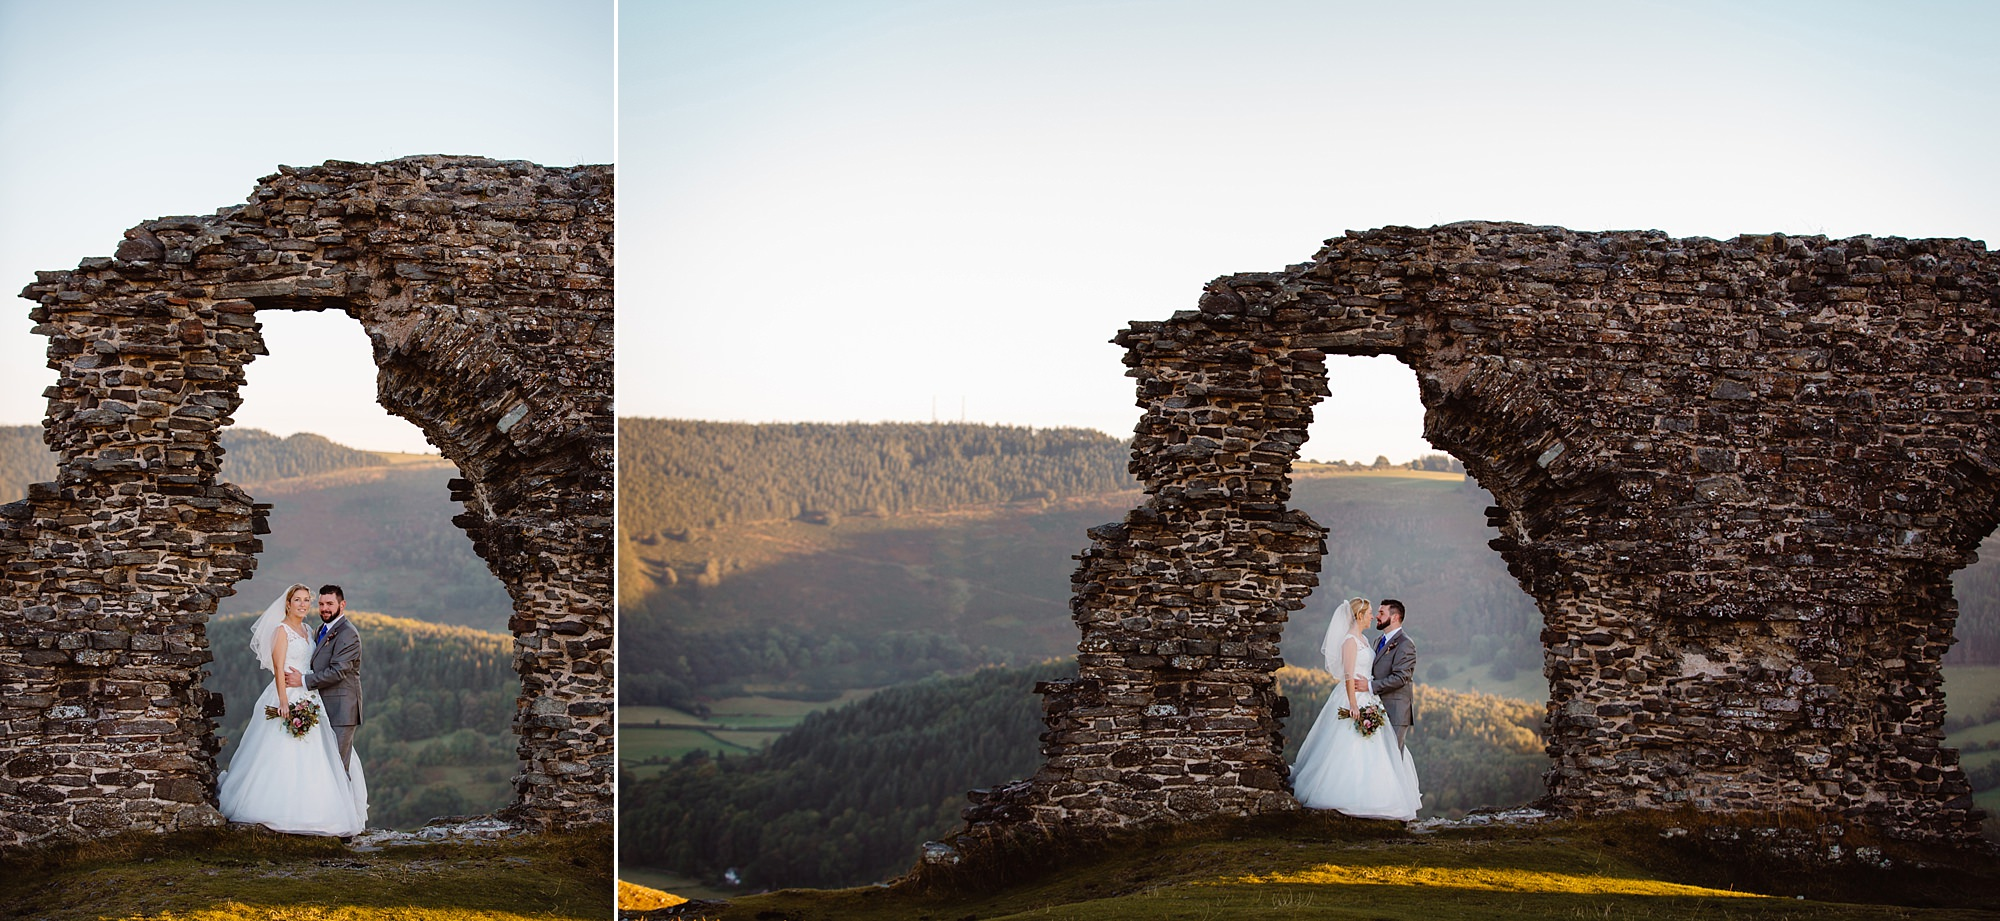 Castell dinas bran wedding photography at sunset - a bride and groom stand underneath ruins of castle arches